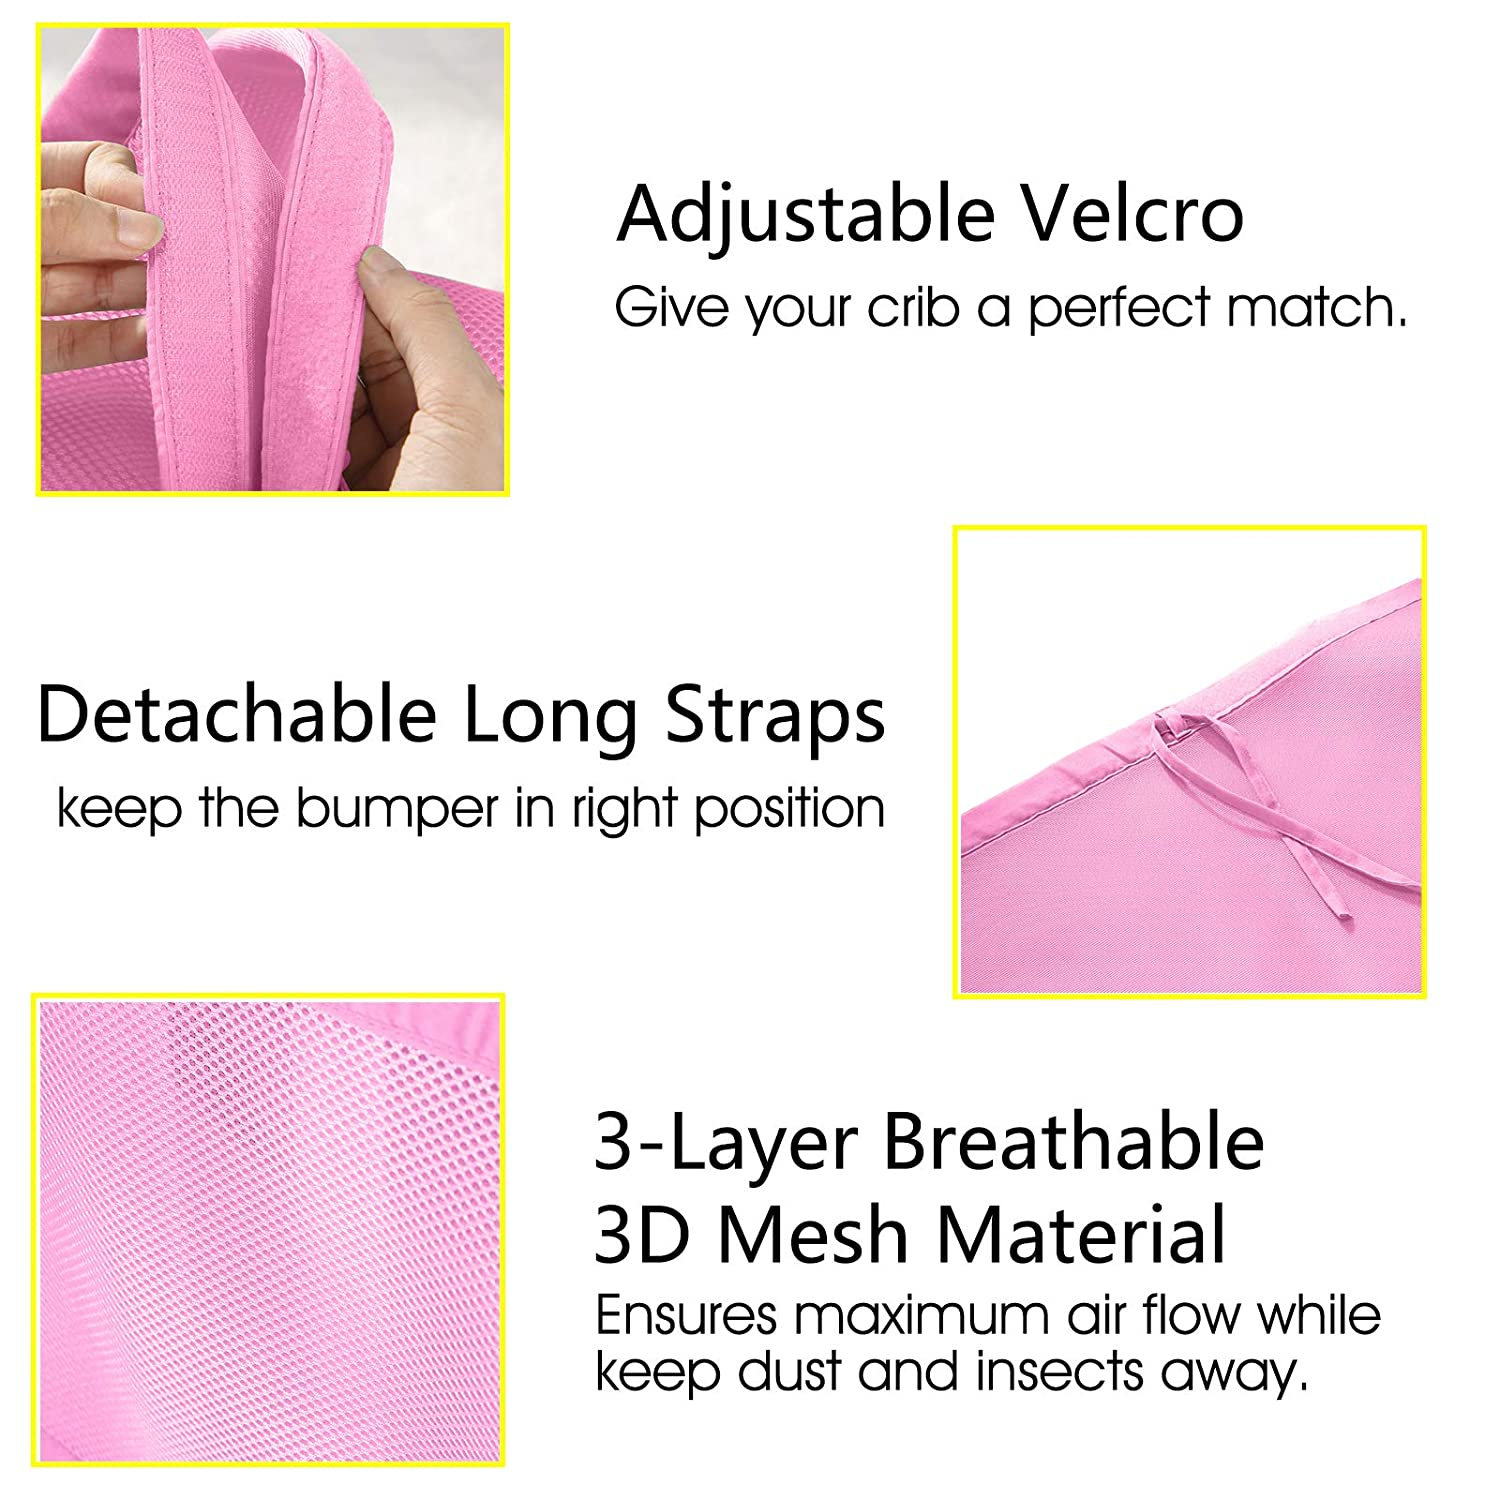 Fits Standard and Other Cribs Mesh Crib Bumper Pink Caroeas Babycare Crib Bumper Adjustable Padded Breathable Crib Bumper Soft Crib Bumper Pads Full Protection